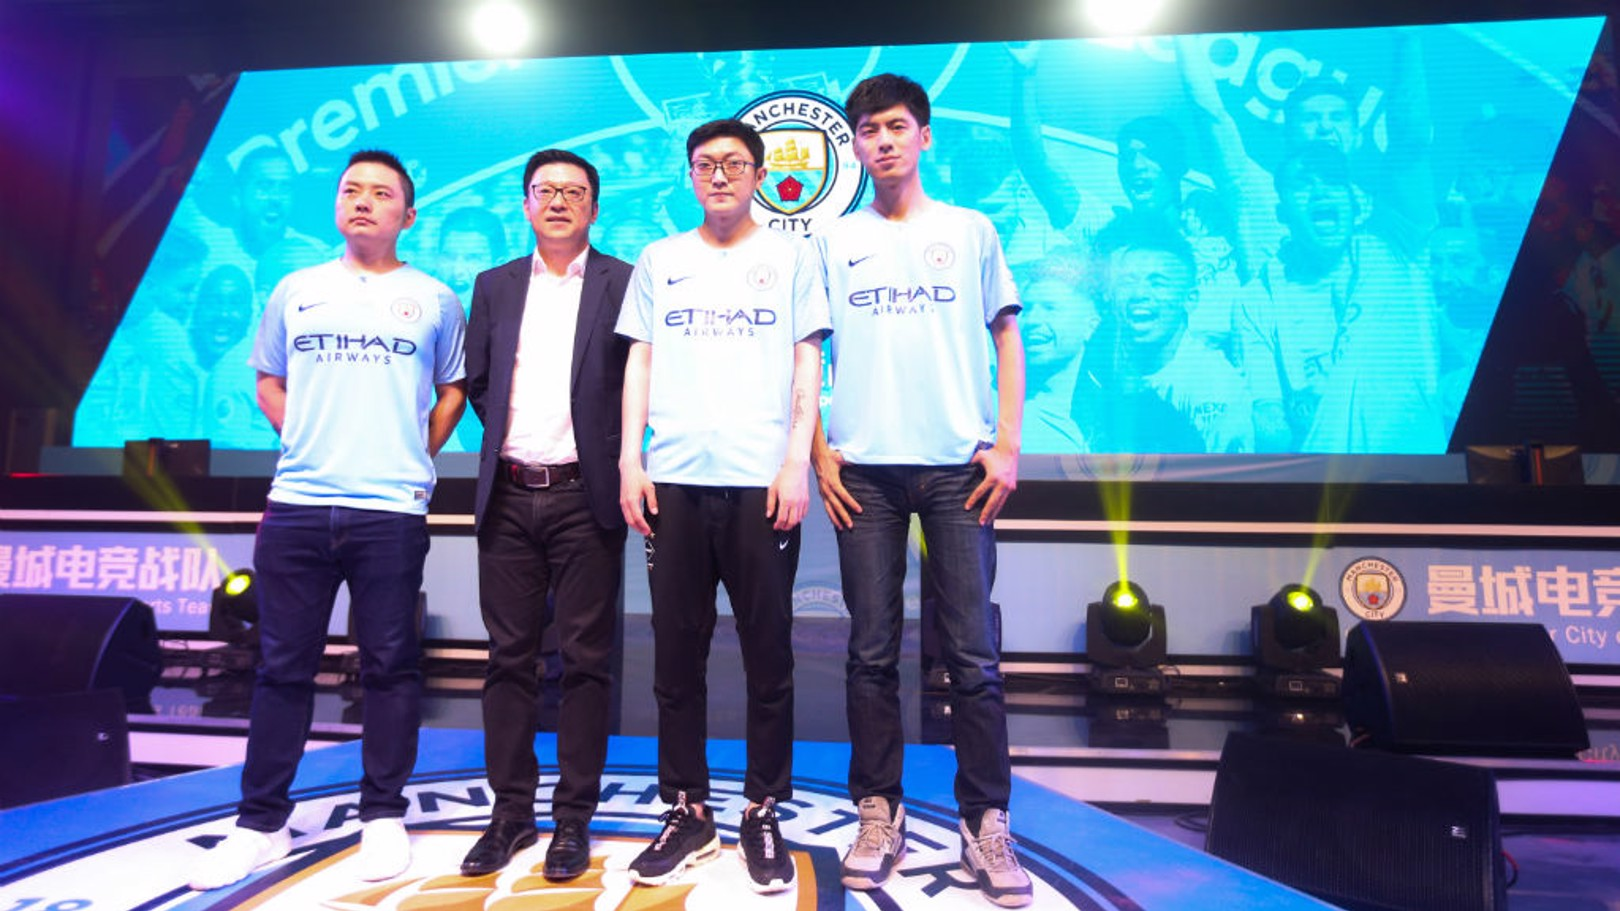 PIONEERS: Members of the FIFA Online team at the esports launch in China